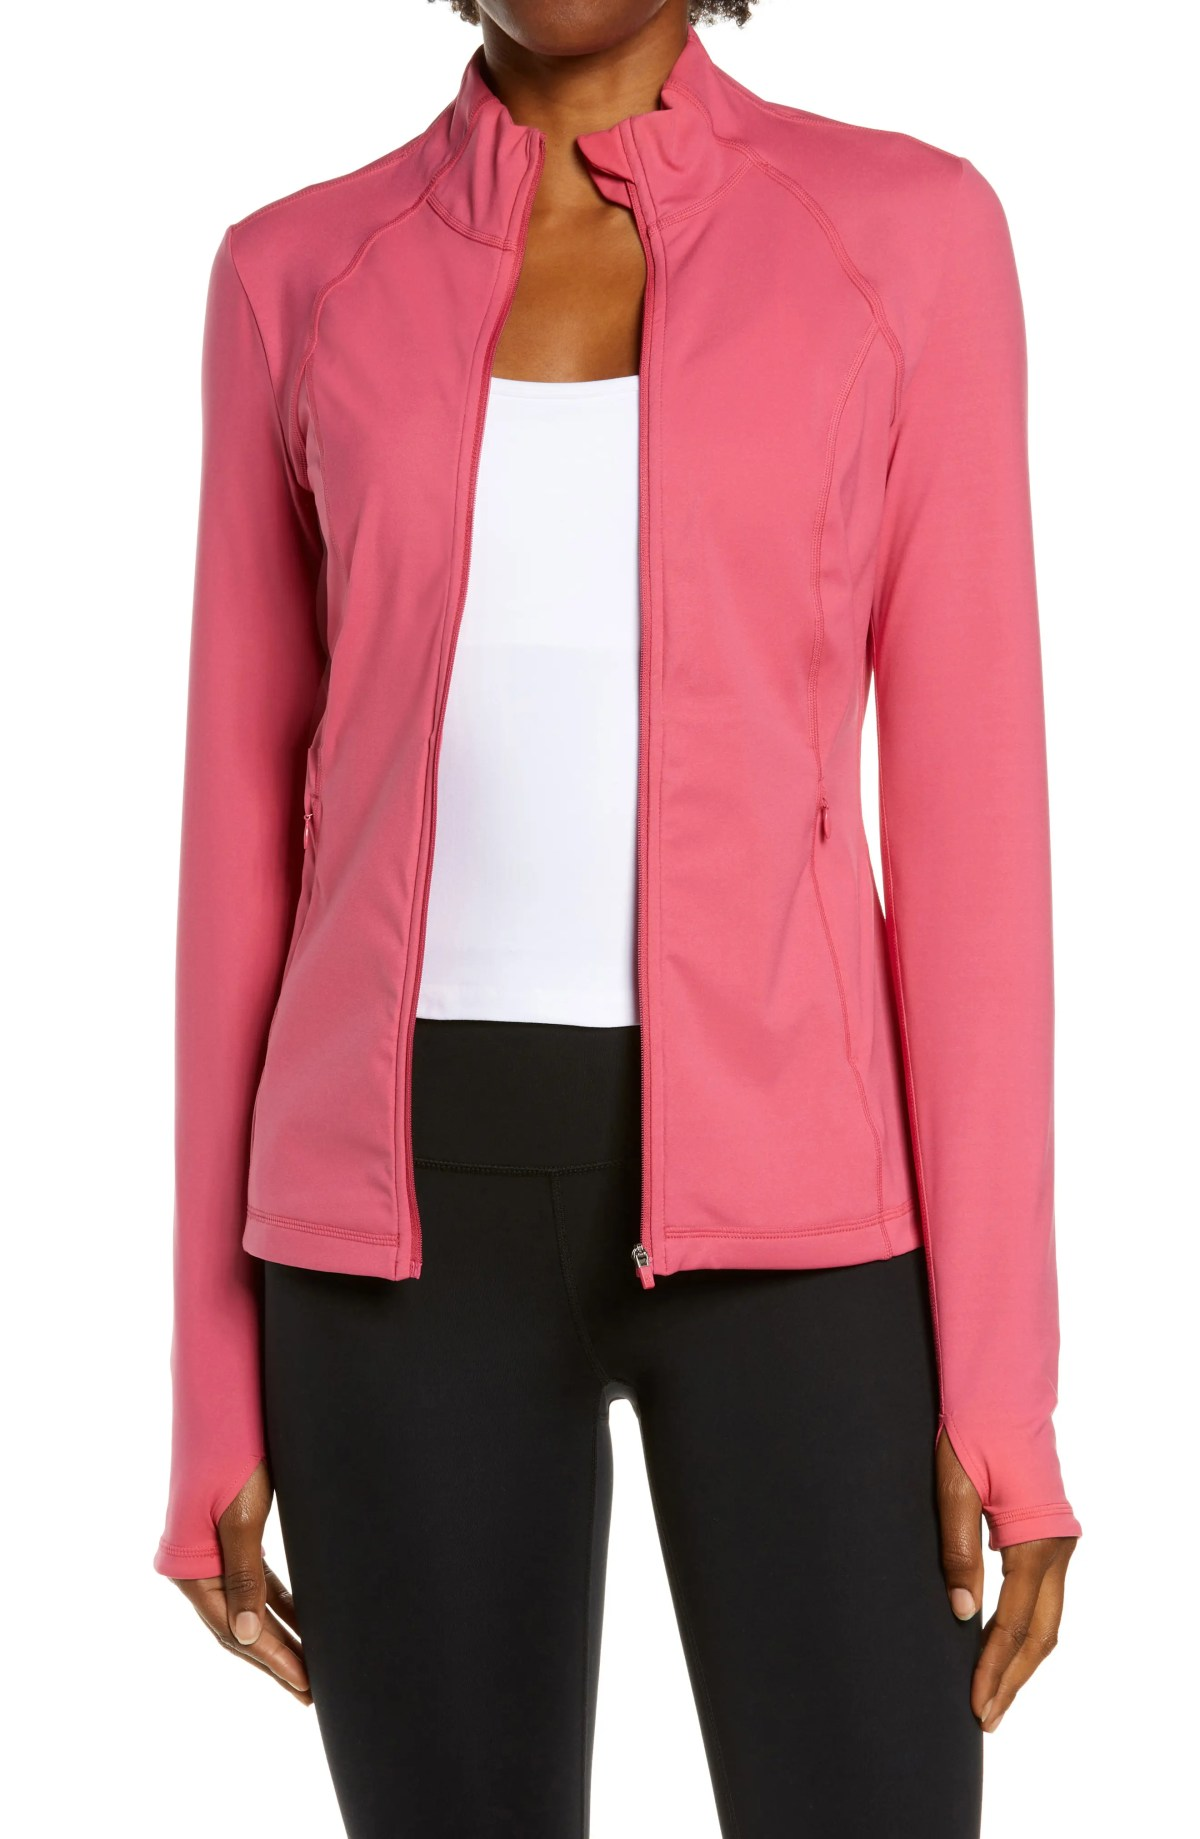 SWEATY BETTY Power Workout Jacket, Main, color, TAYBERRY PINK